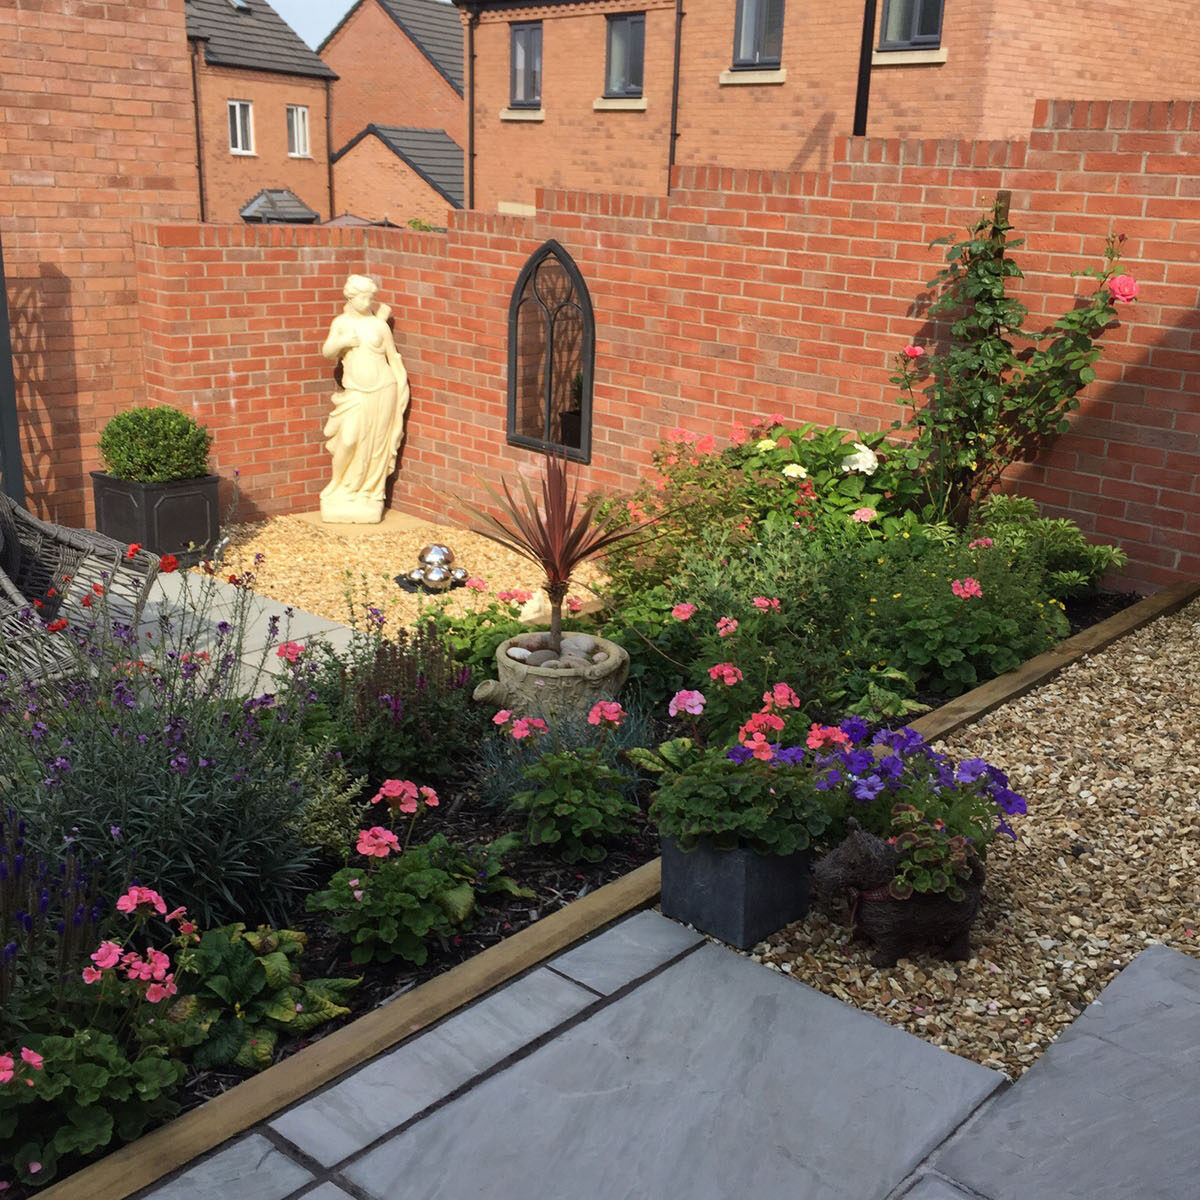 A photo of a brick-walled garden, looking down past flower beds with a statue in the corner.